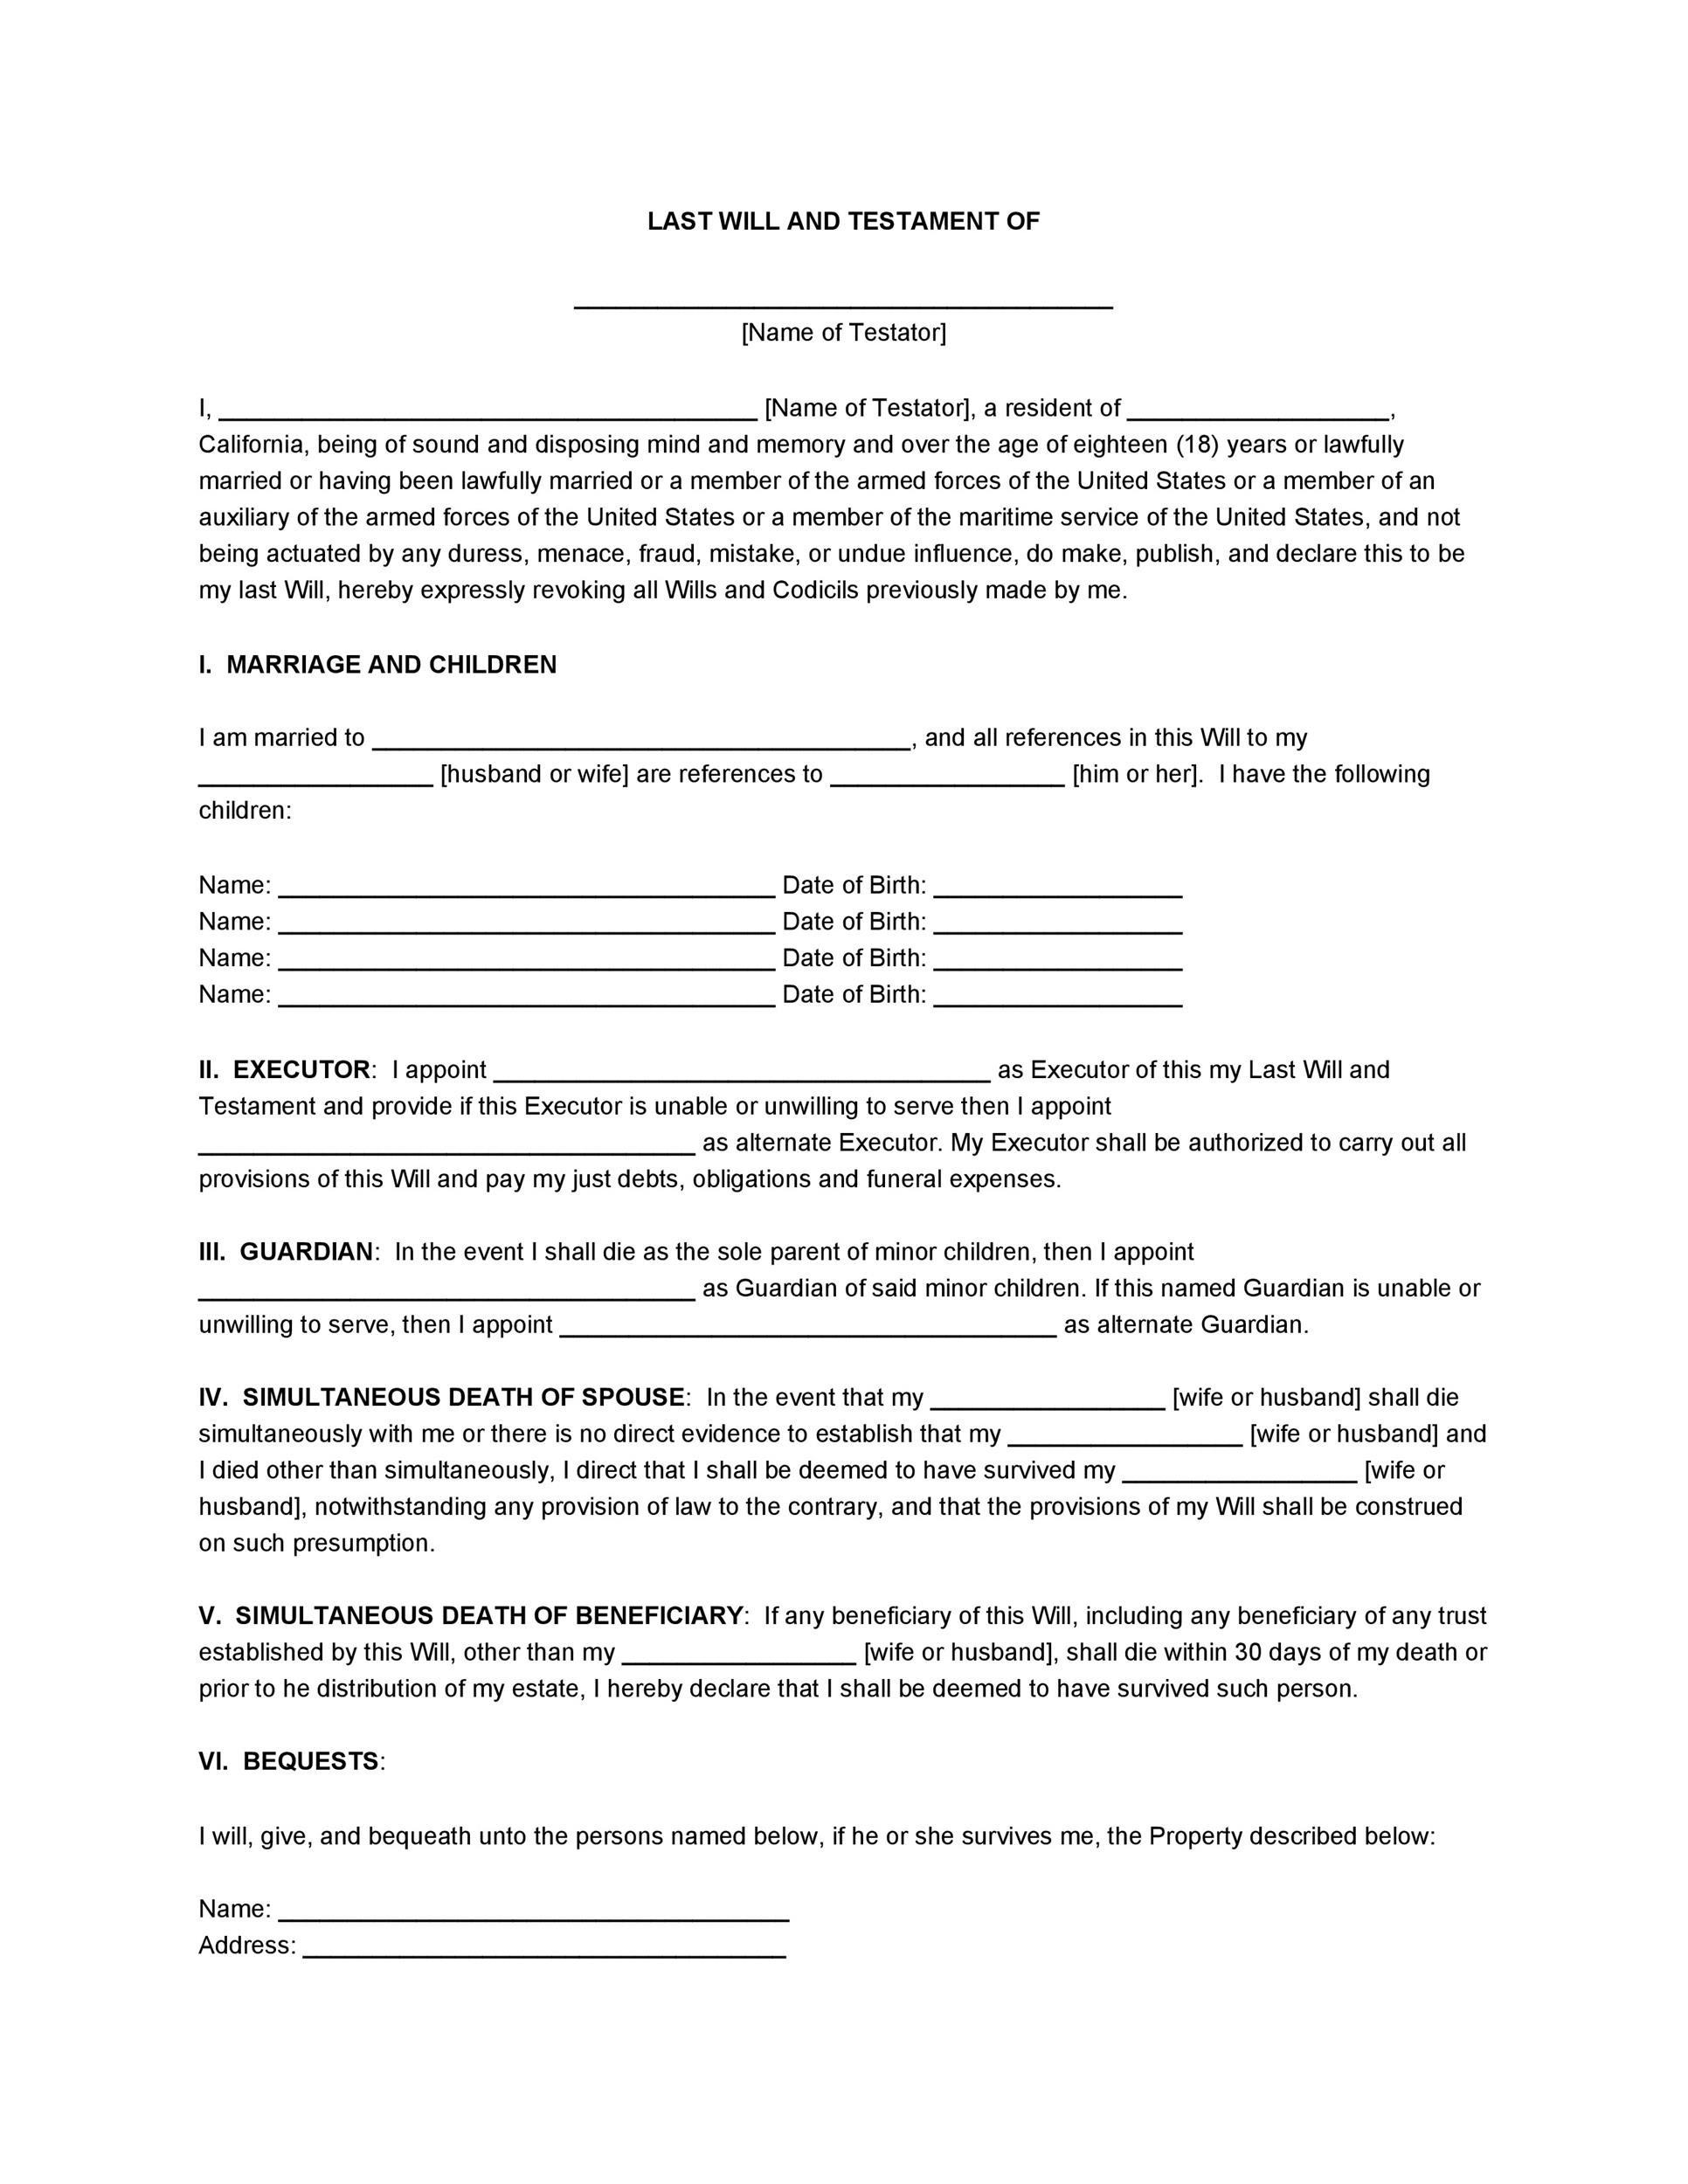 Last wills and testaments free templates 28 images 39 for Last will and testament free template maryland